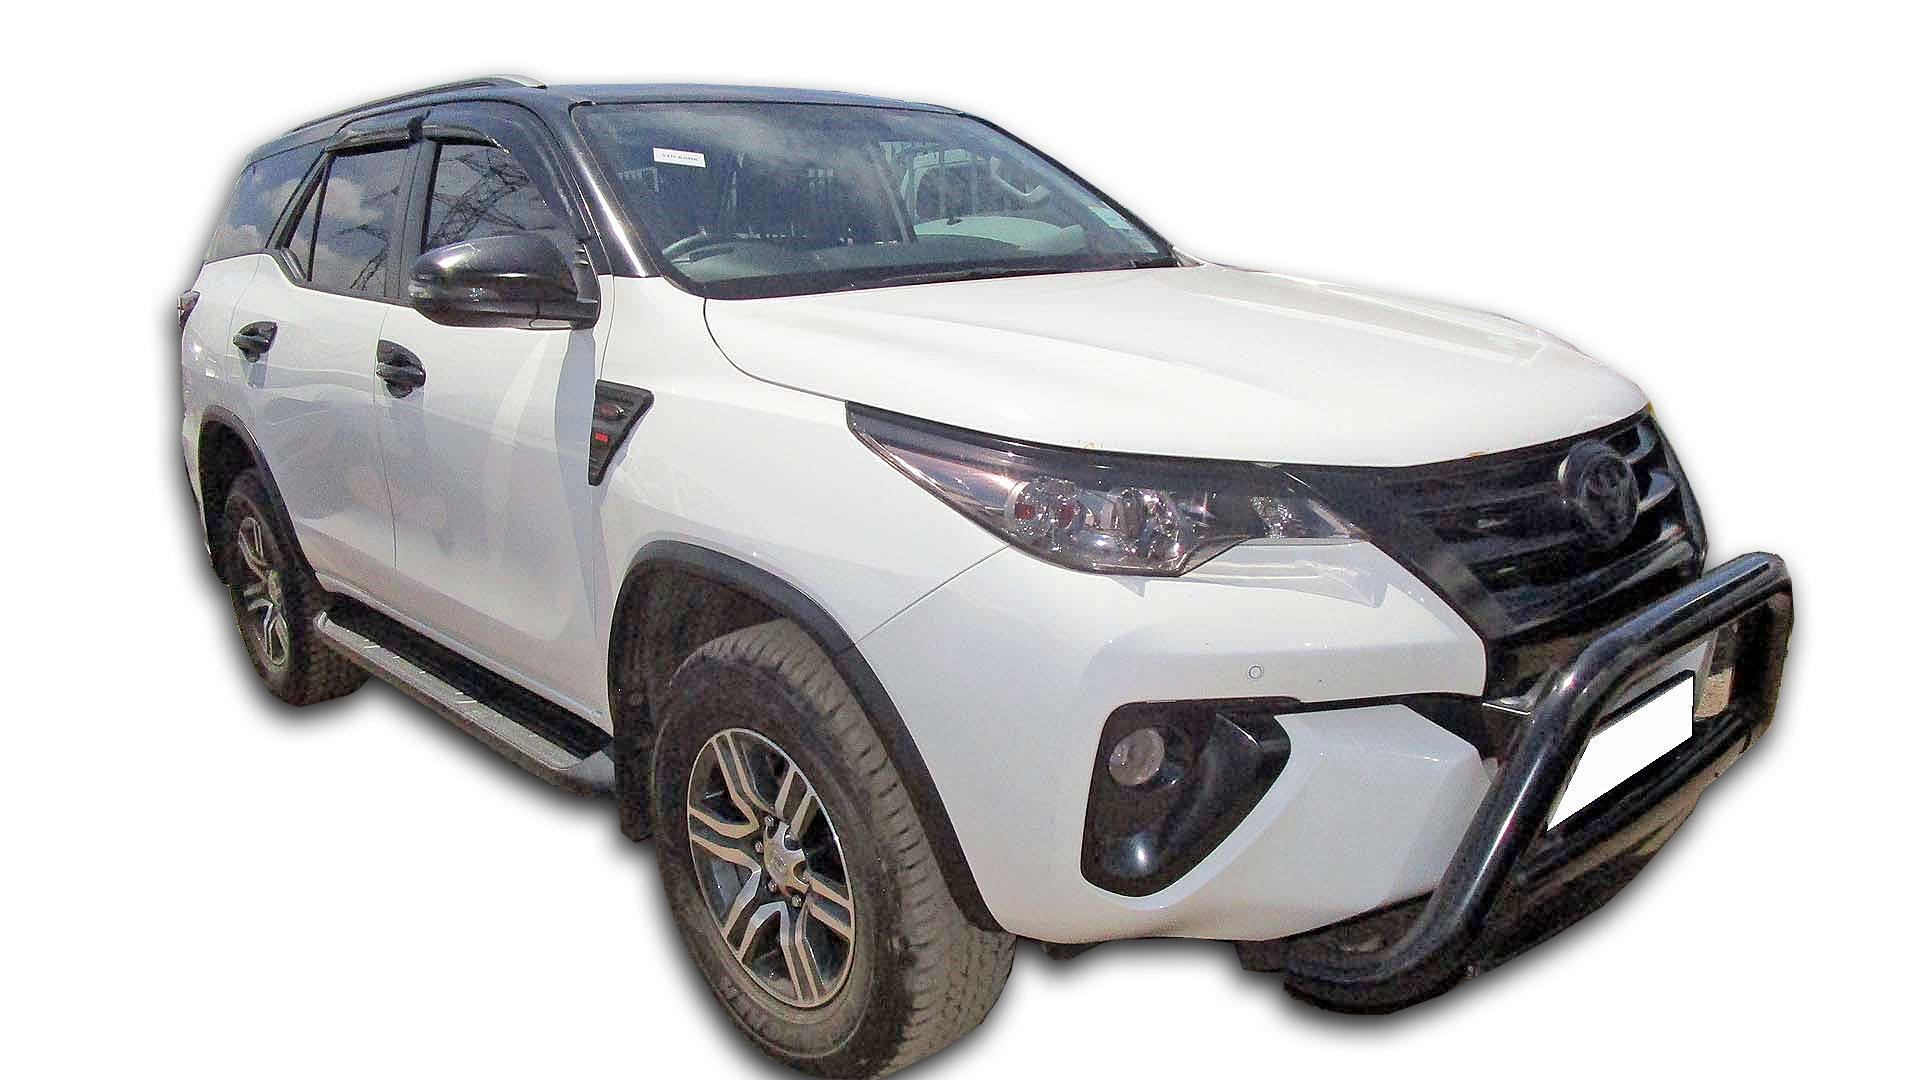 Toyota Fortuner 2.4 GD -6